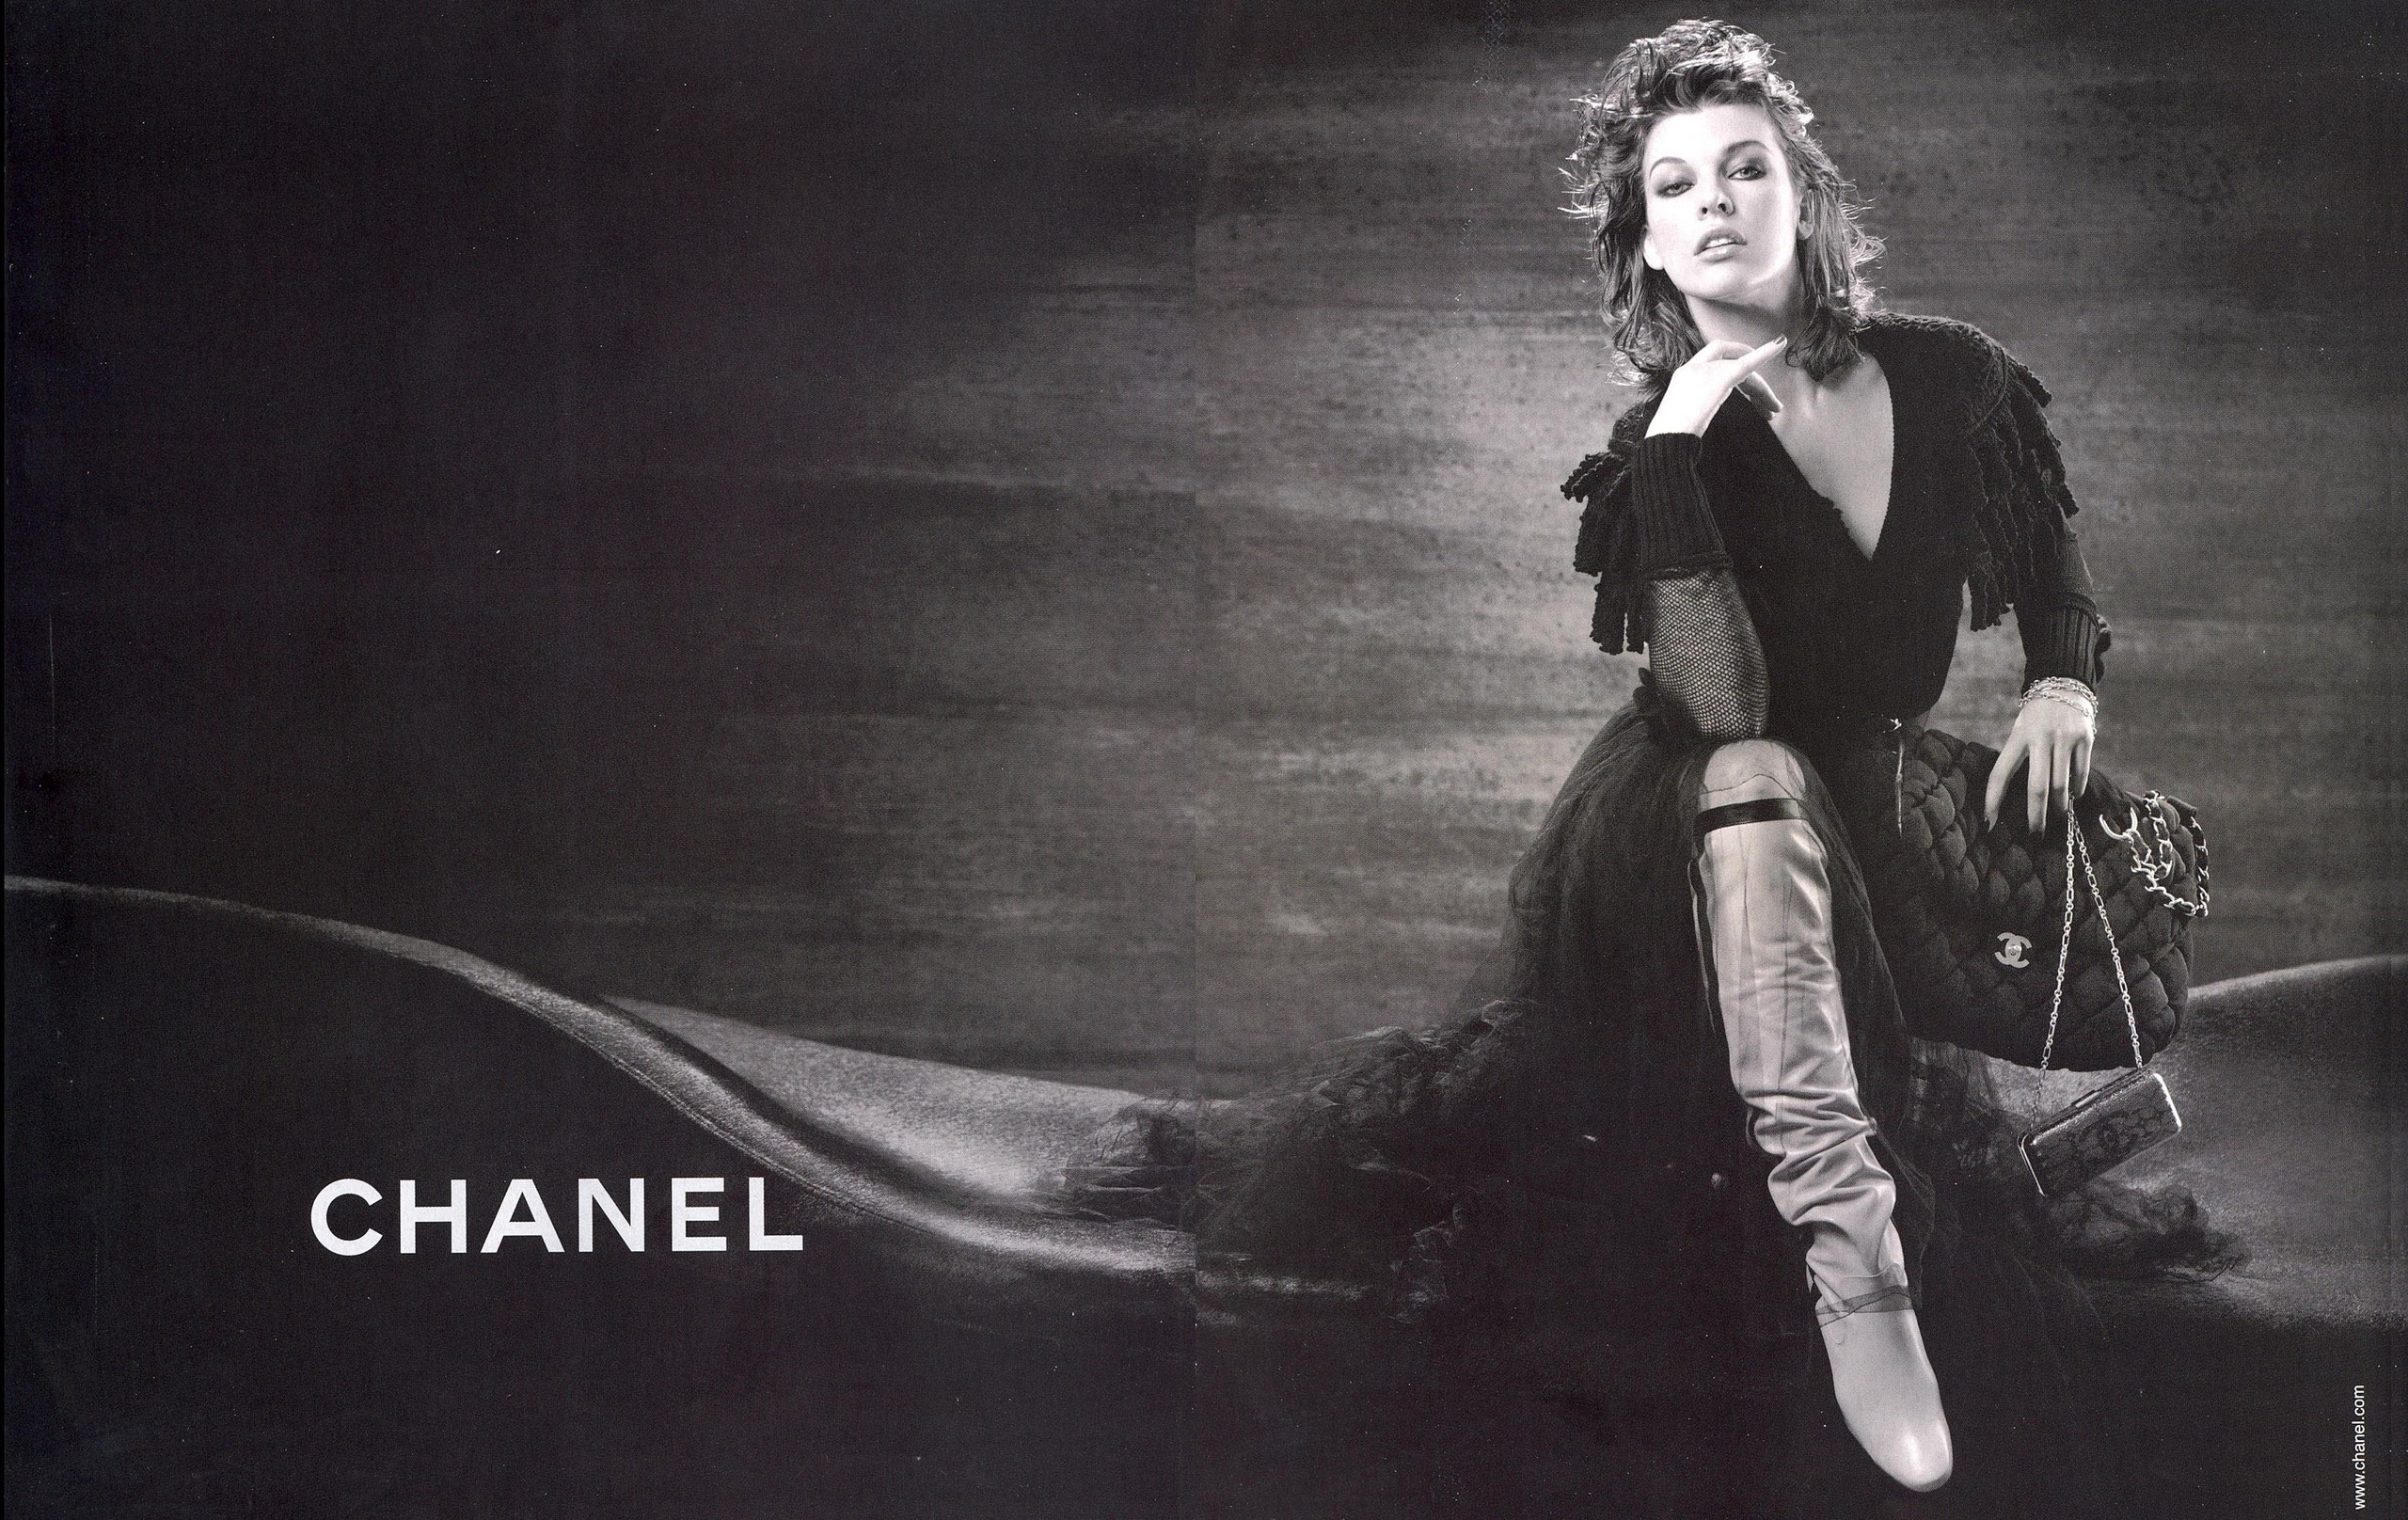 Chanel Vintage Fashion Photography